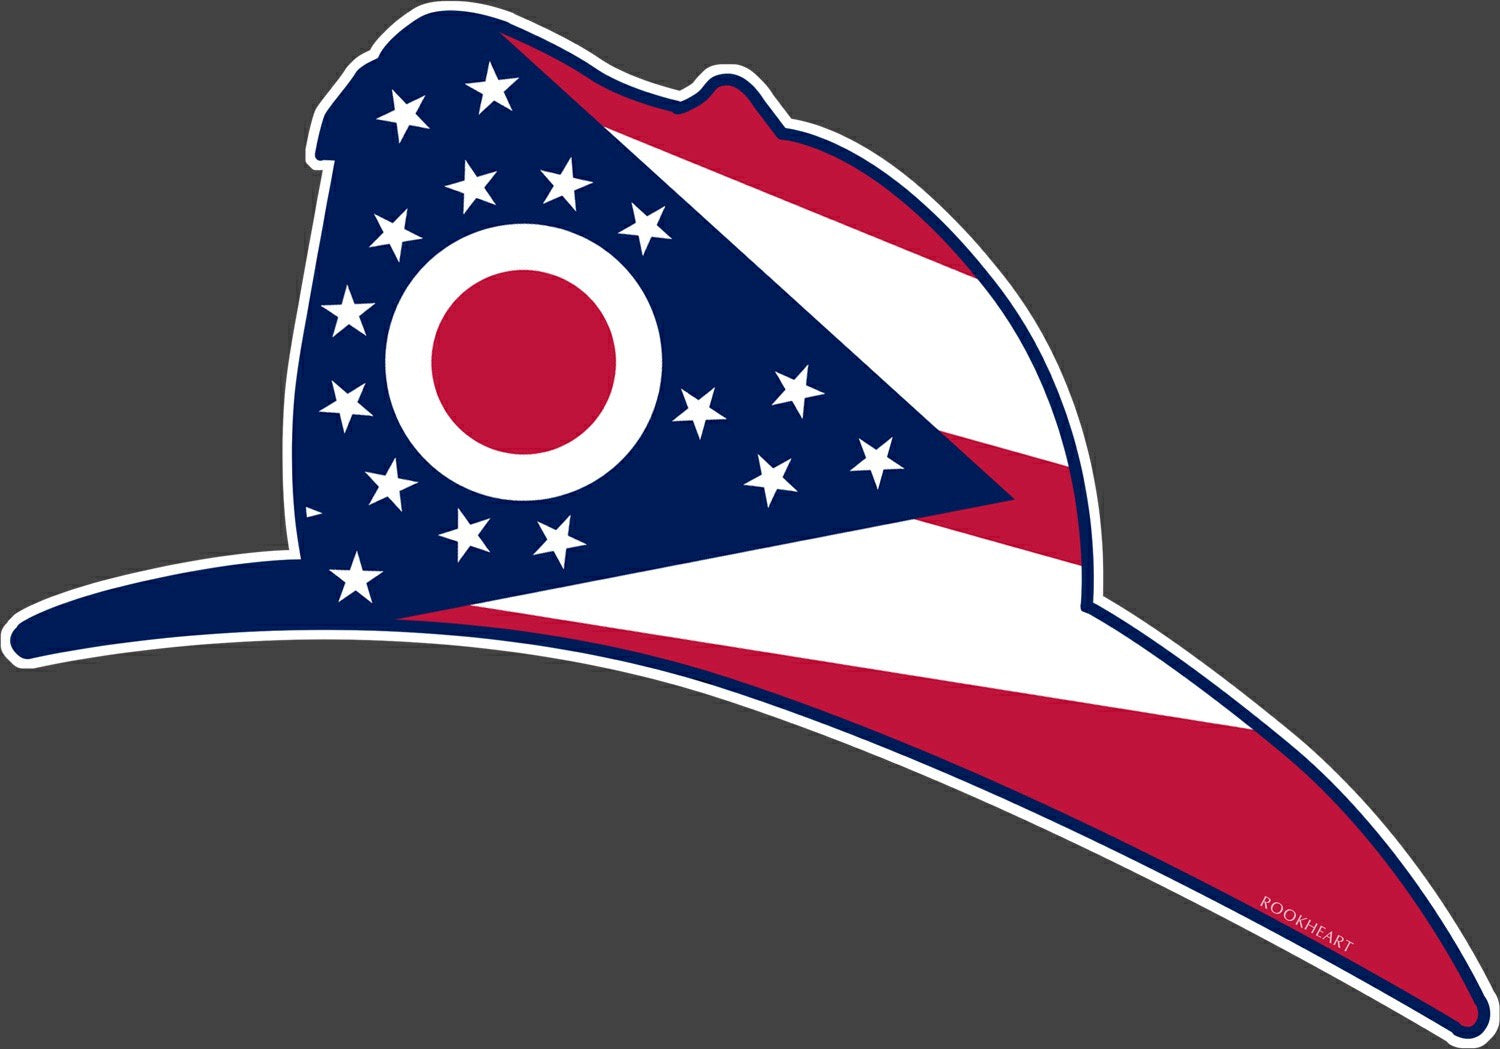 Fireman Helmet Ohio State Flag Vinyl Decal